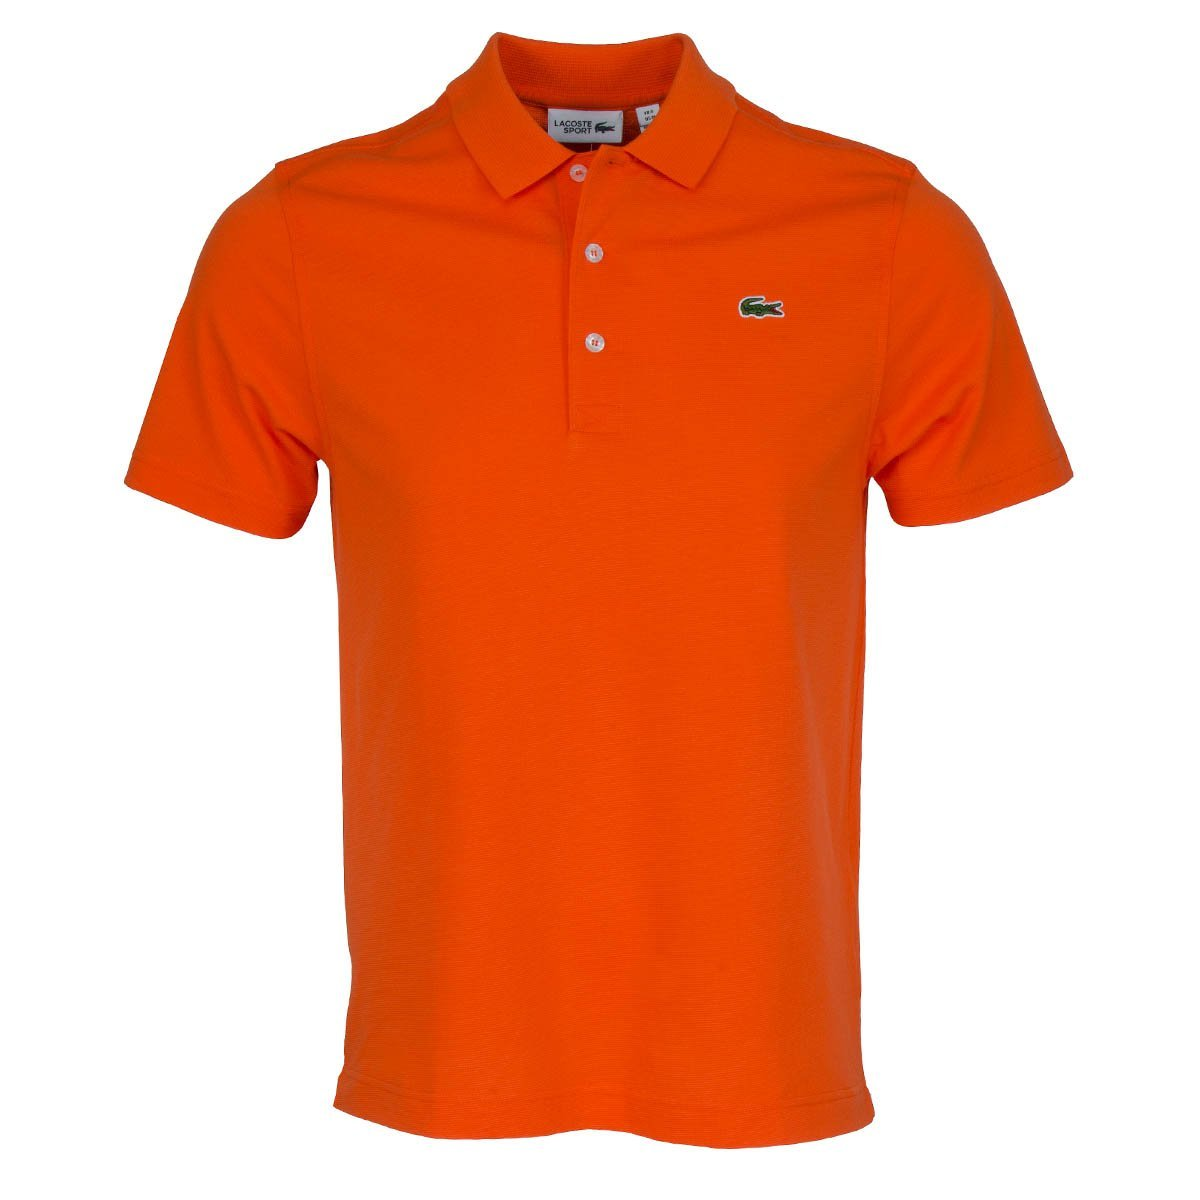 Lacoste Polo L1230 00 p40 Orange bouee Cotone elasten Regular 5